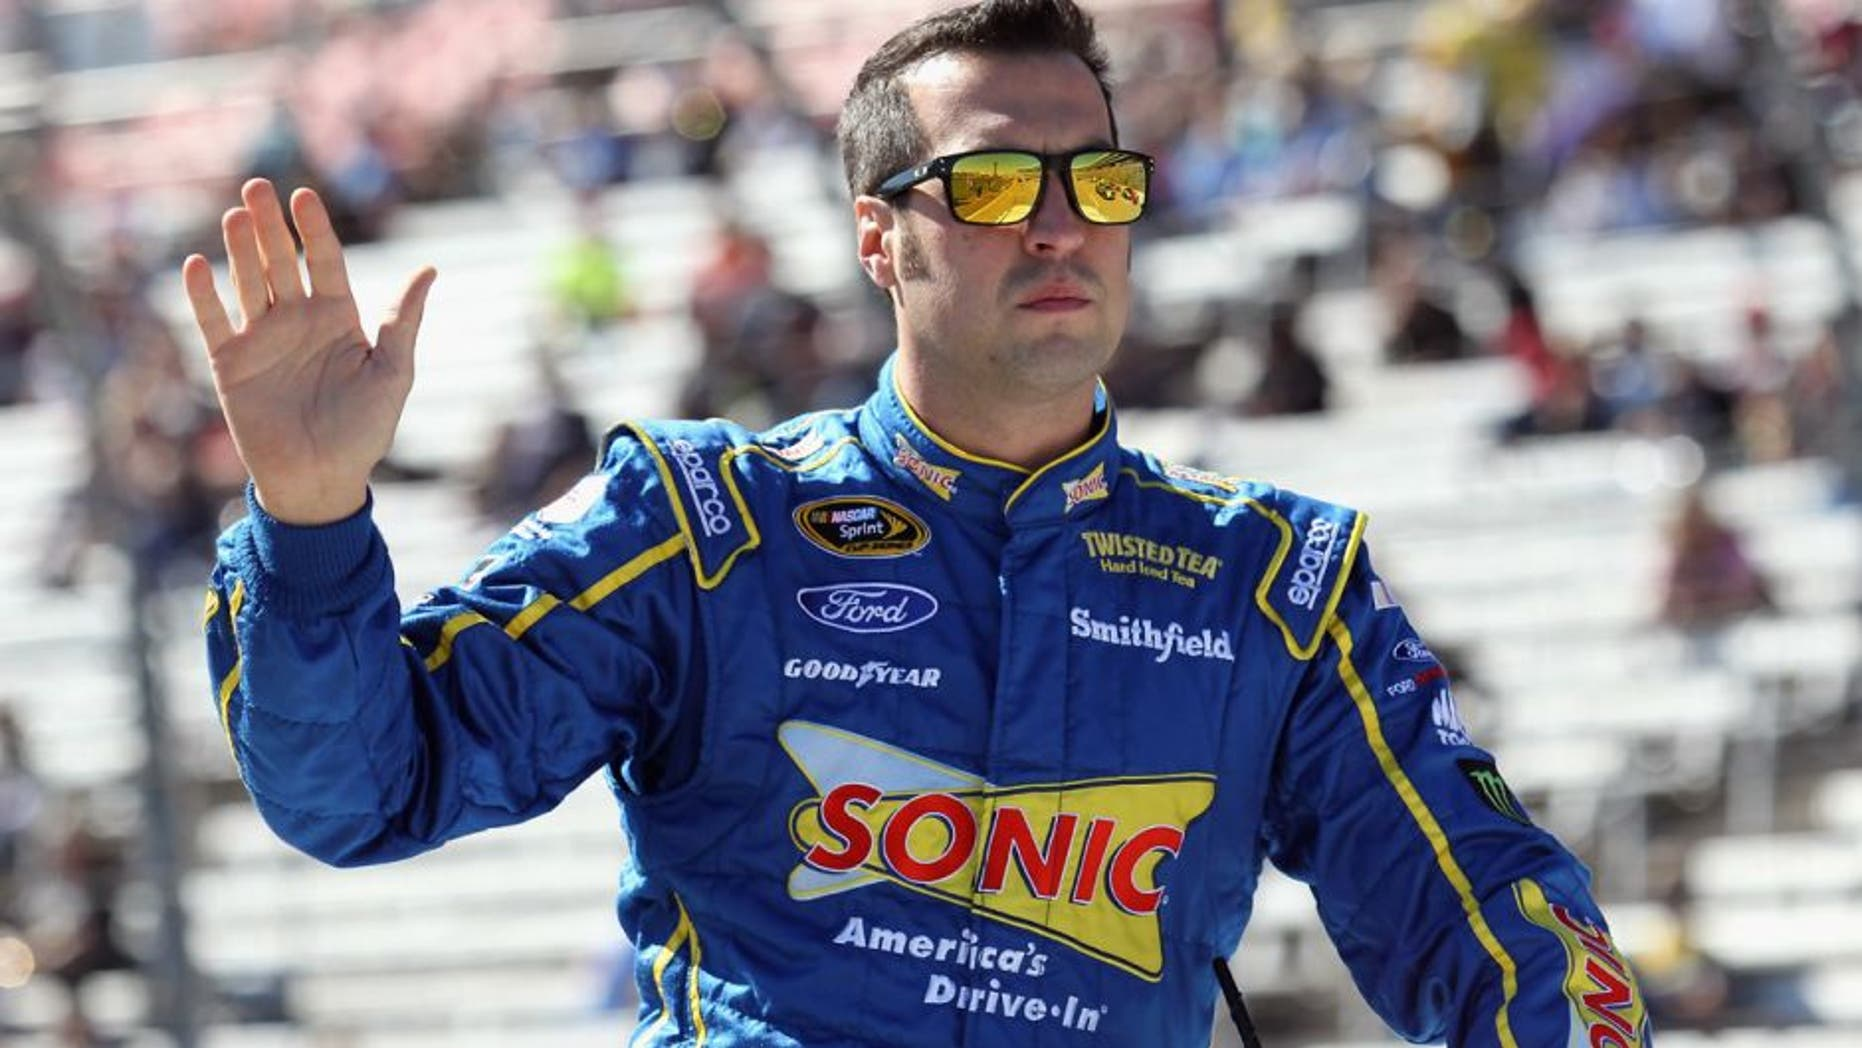 FORT WORTH, TX - NOVEMBER 08: Sam Hornish Jr., driver of the #9 Sonic Ford, greets fans from a parade vehicle during pre-race ceremonies for the NASCAR Sprint Cup Series AAA Texas 500 at Texas Motor Speedway on November 8, 2015 in Fort Worth, Texas. (Photo by Tim Bradbury/Getty Images for Texas Motor Speedway)